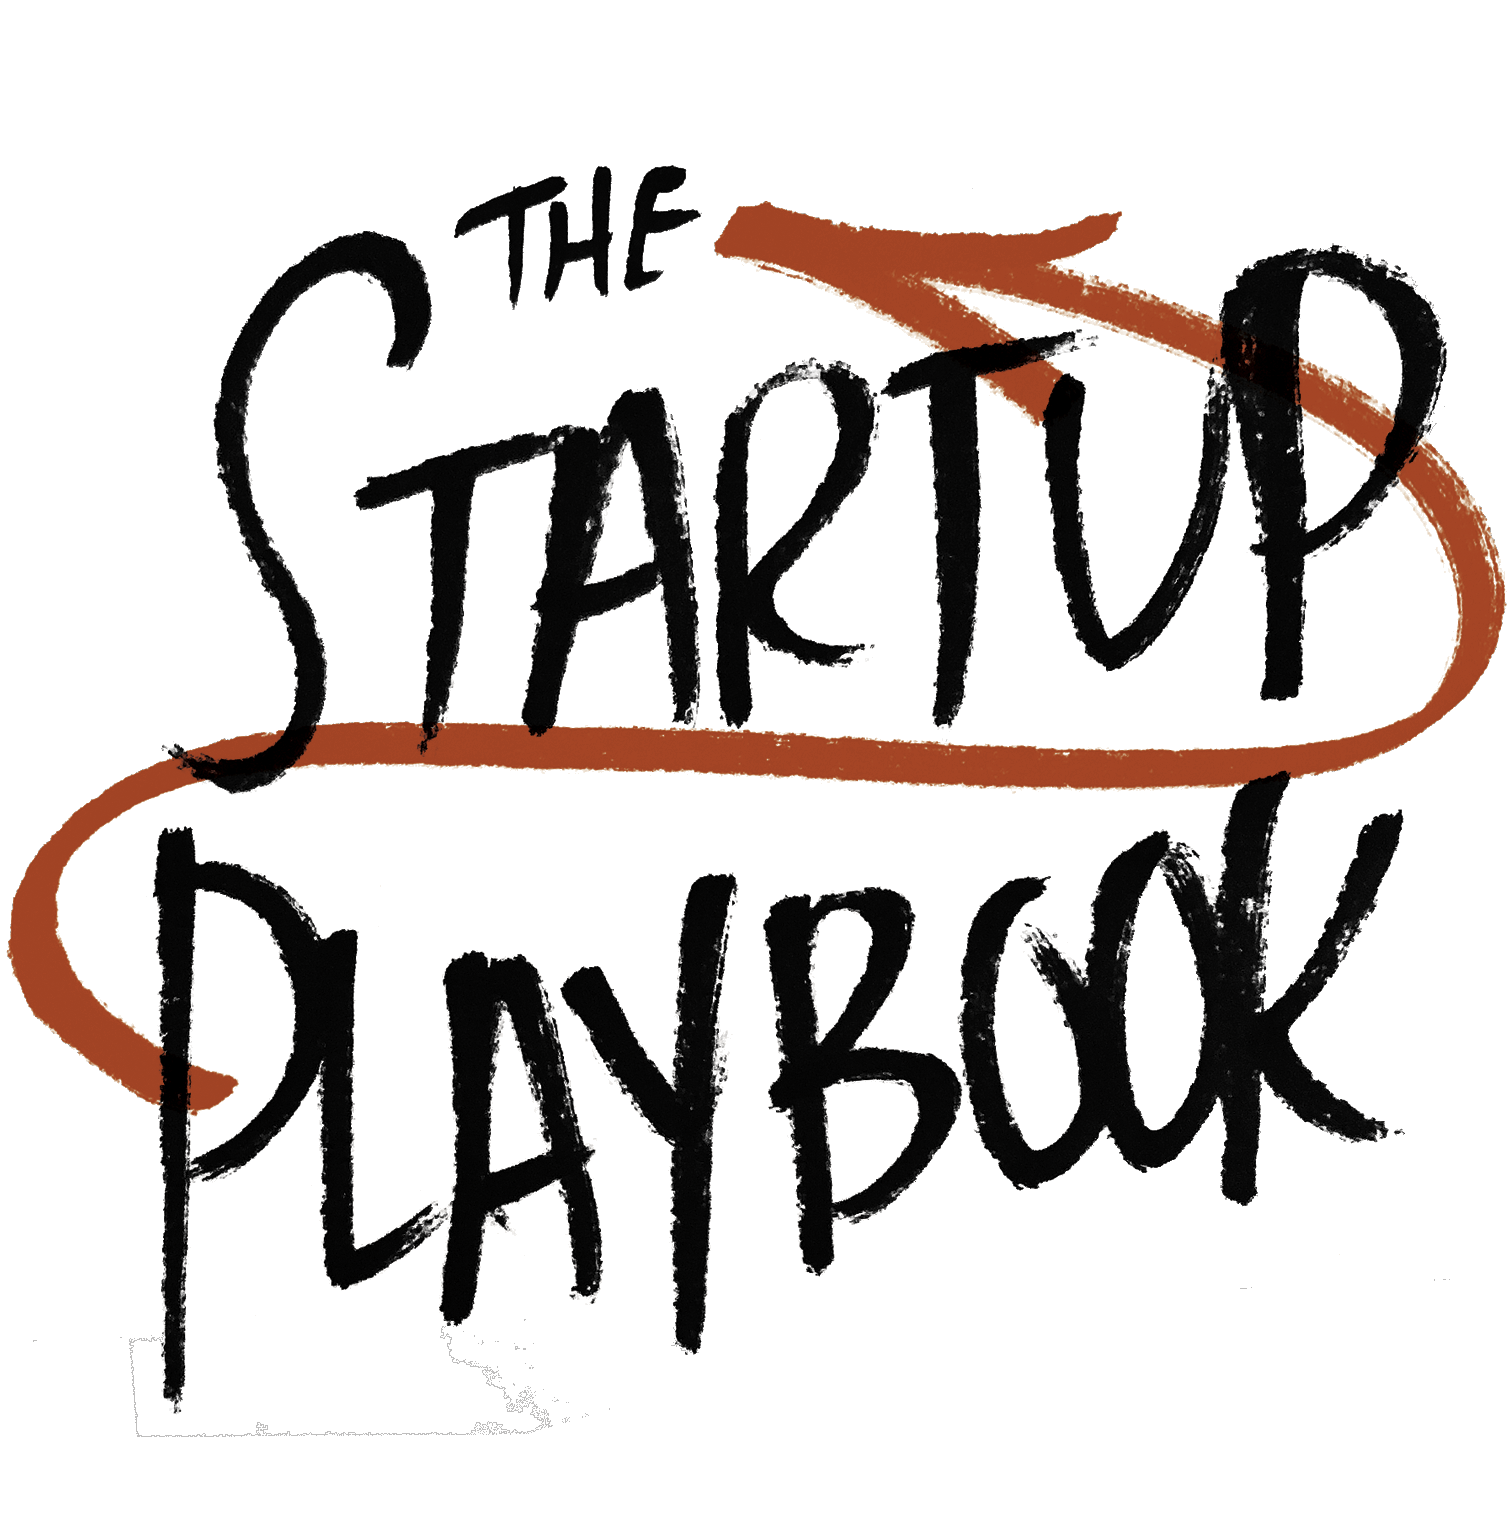 Dead clipart guidebook. The startup playbook founder